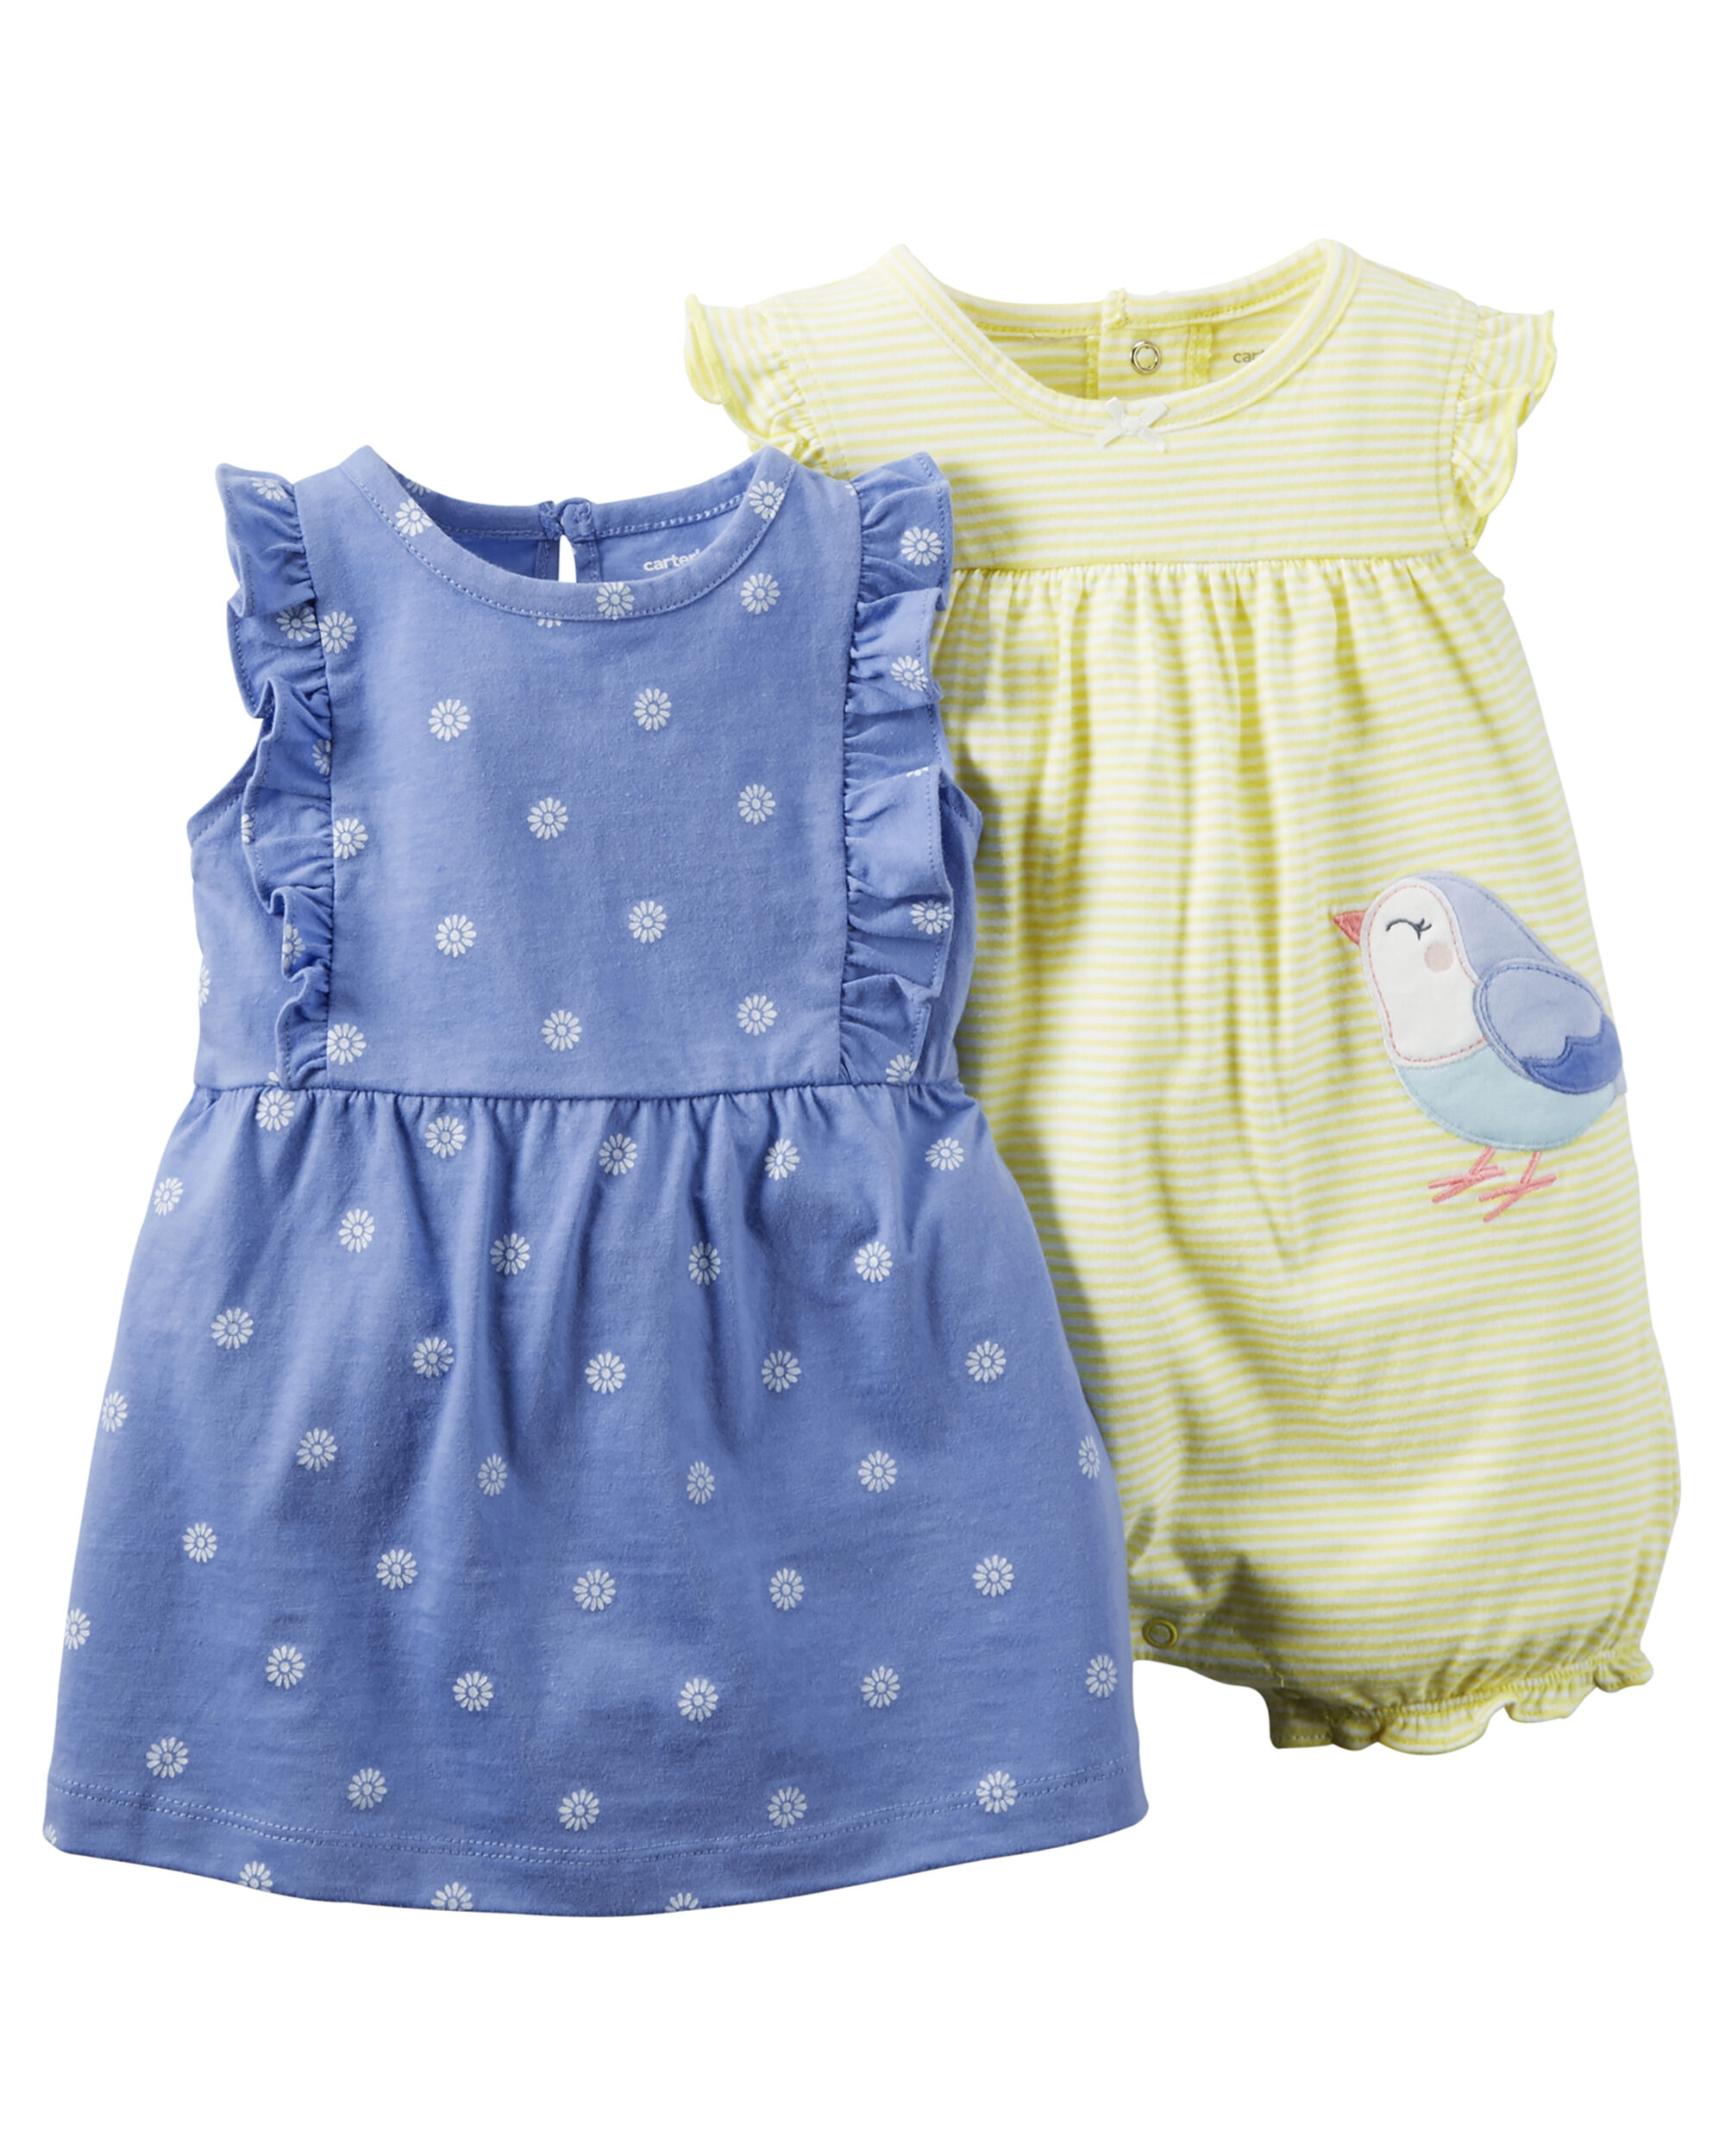 Carters Baby Girl Dress Set Newest and Cutest Baby Clothing